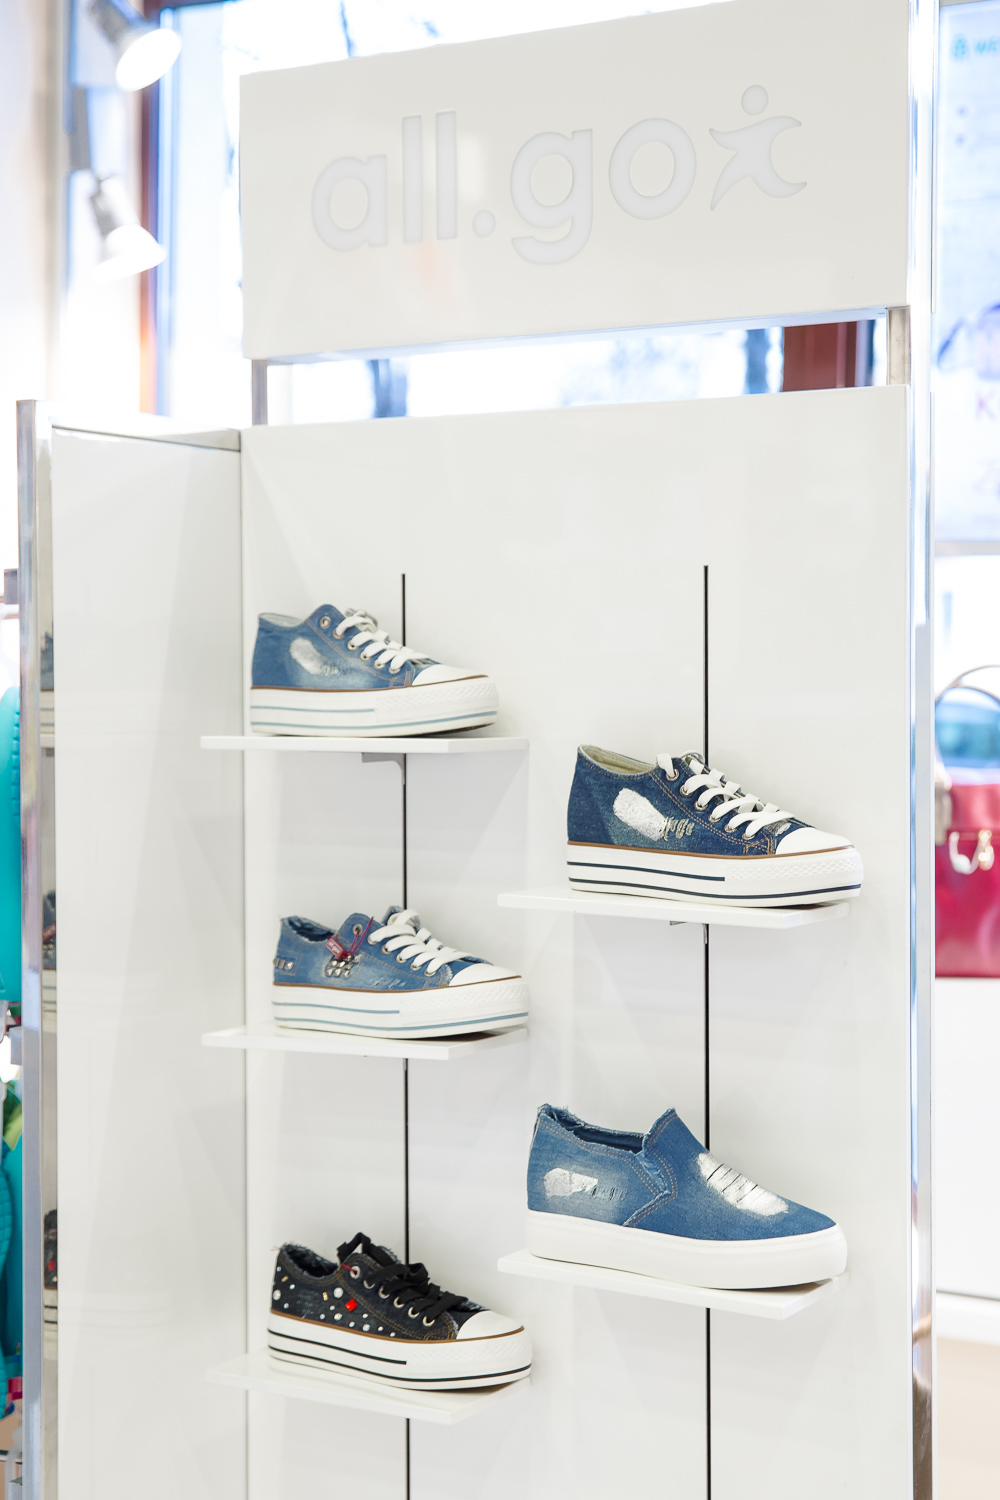 """Shoes of Russia """"captures the demand for sneakers"""